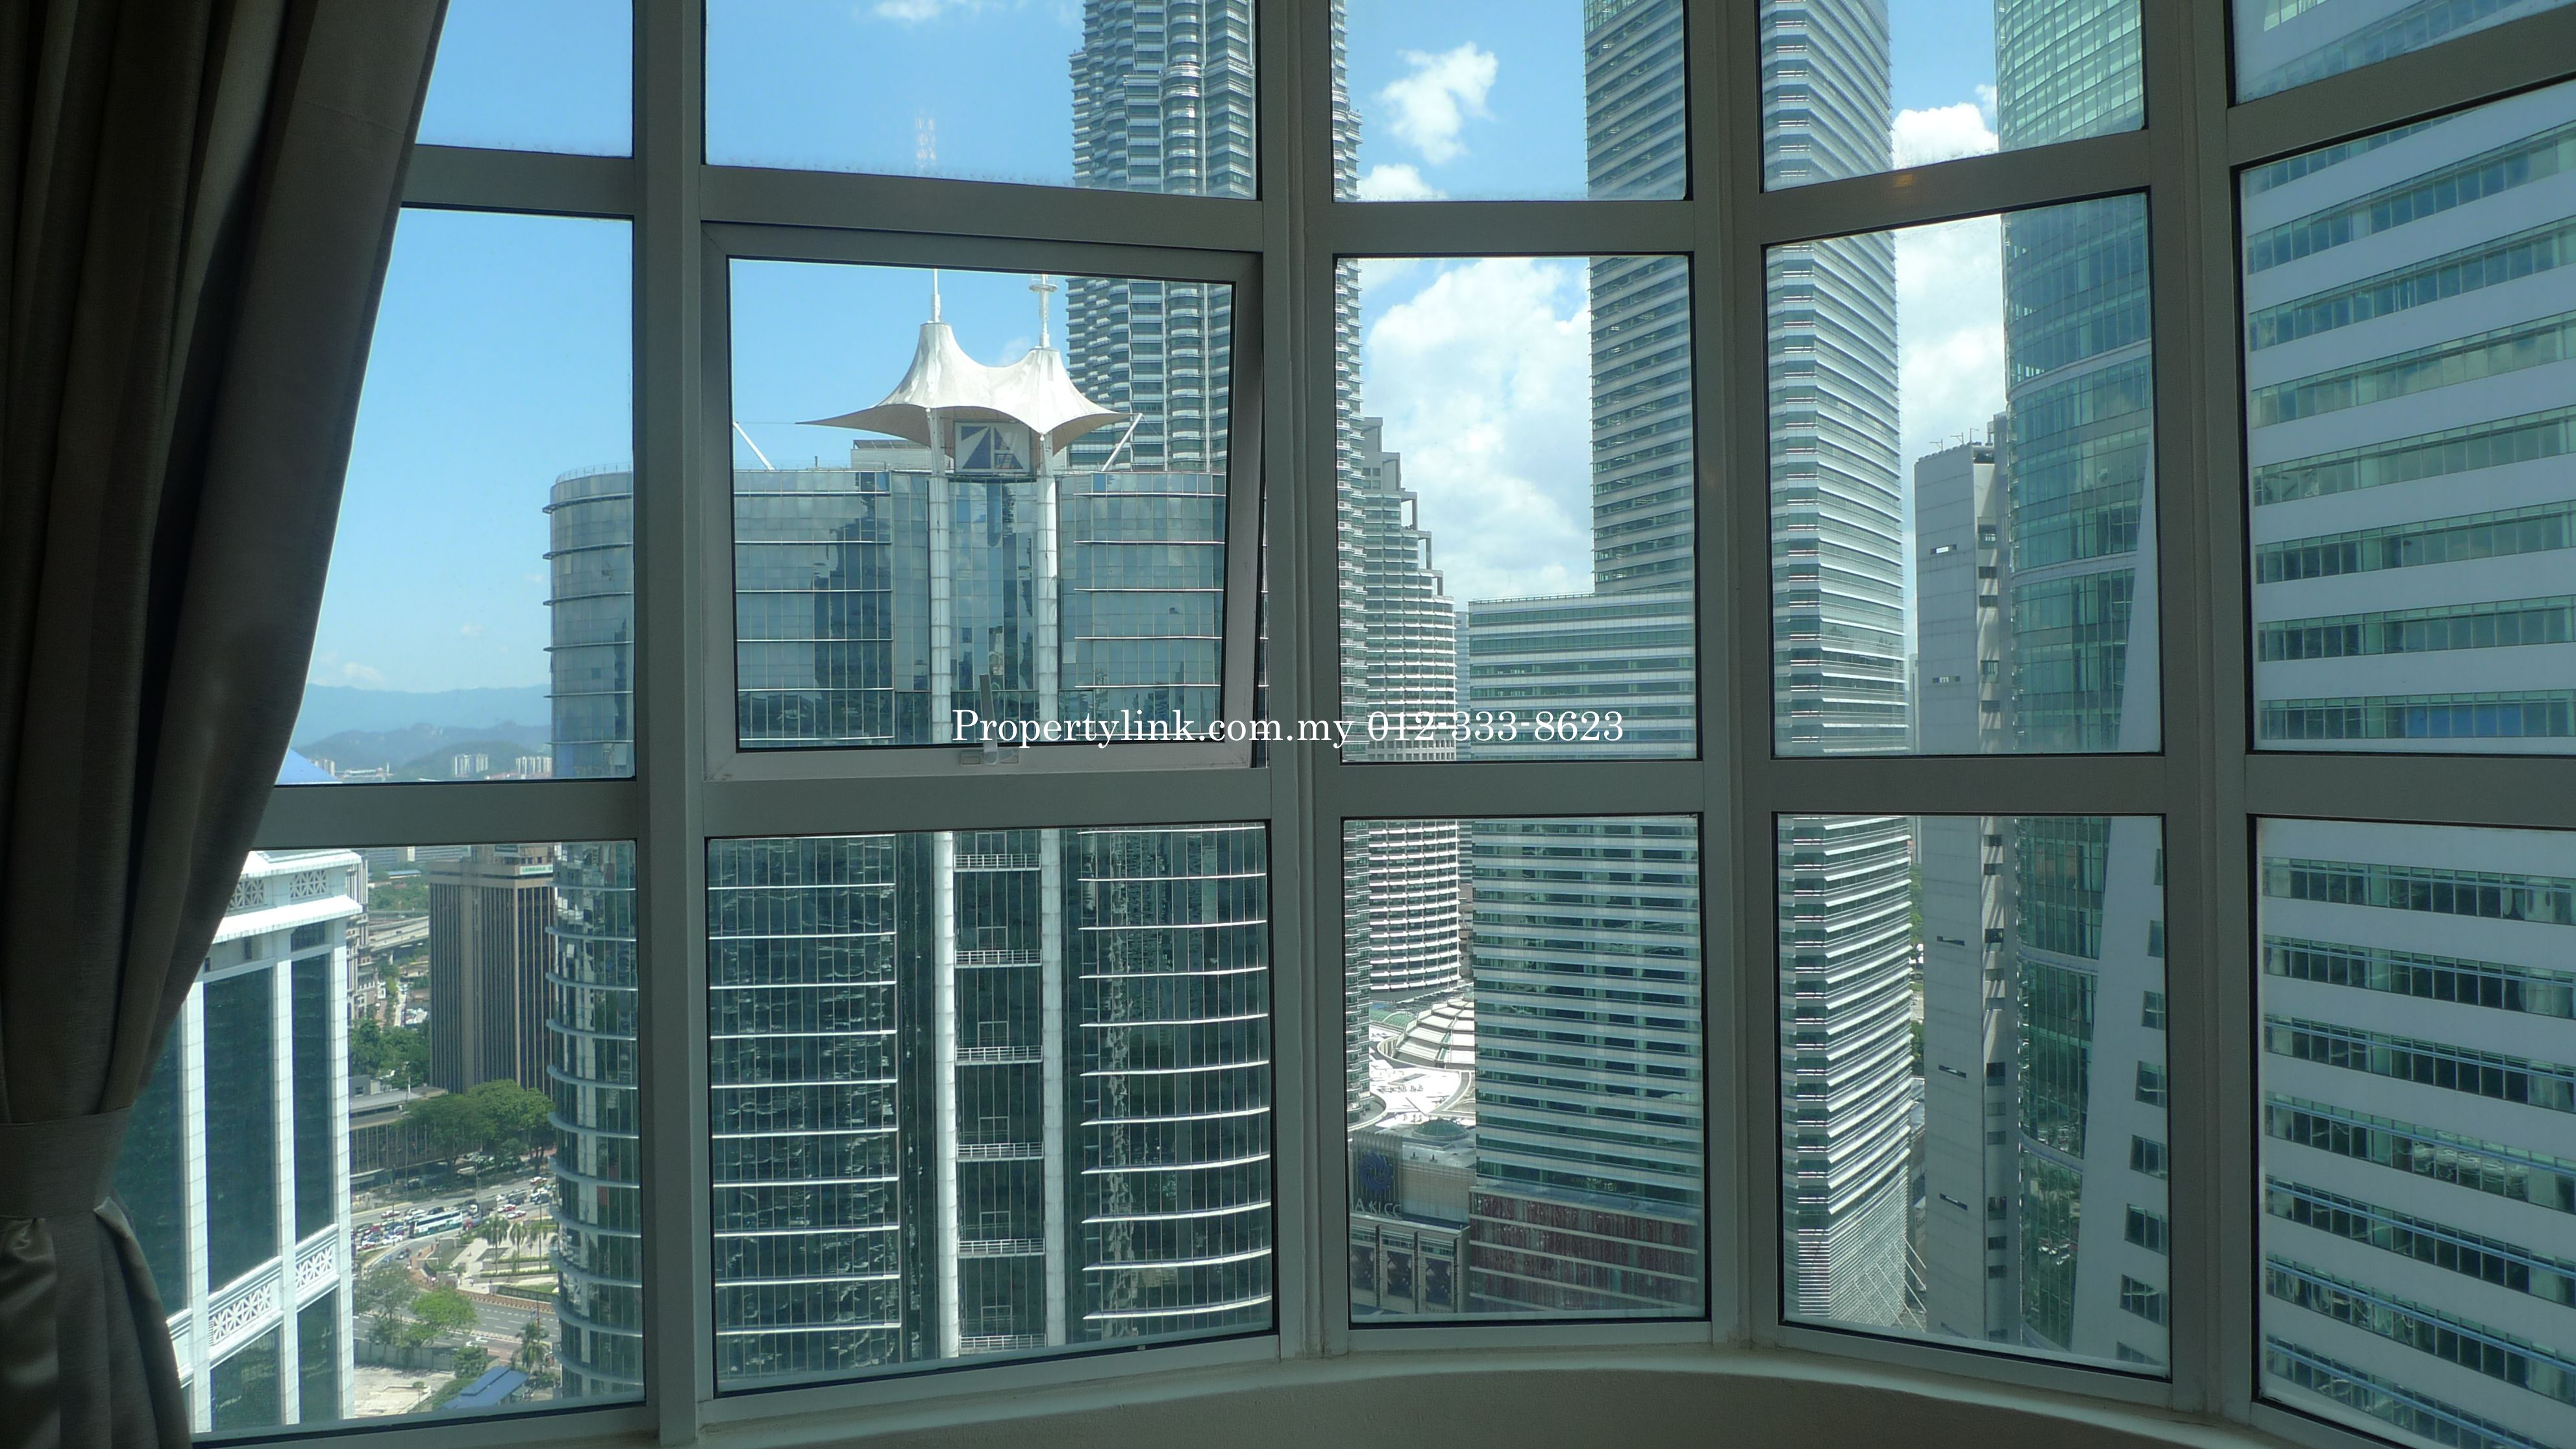 Parkview KLCC Service Apartment, Kuala Lumpur, Malaysia, for Sale 出售